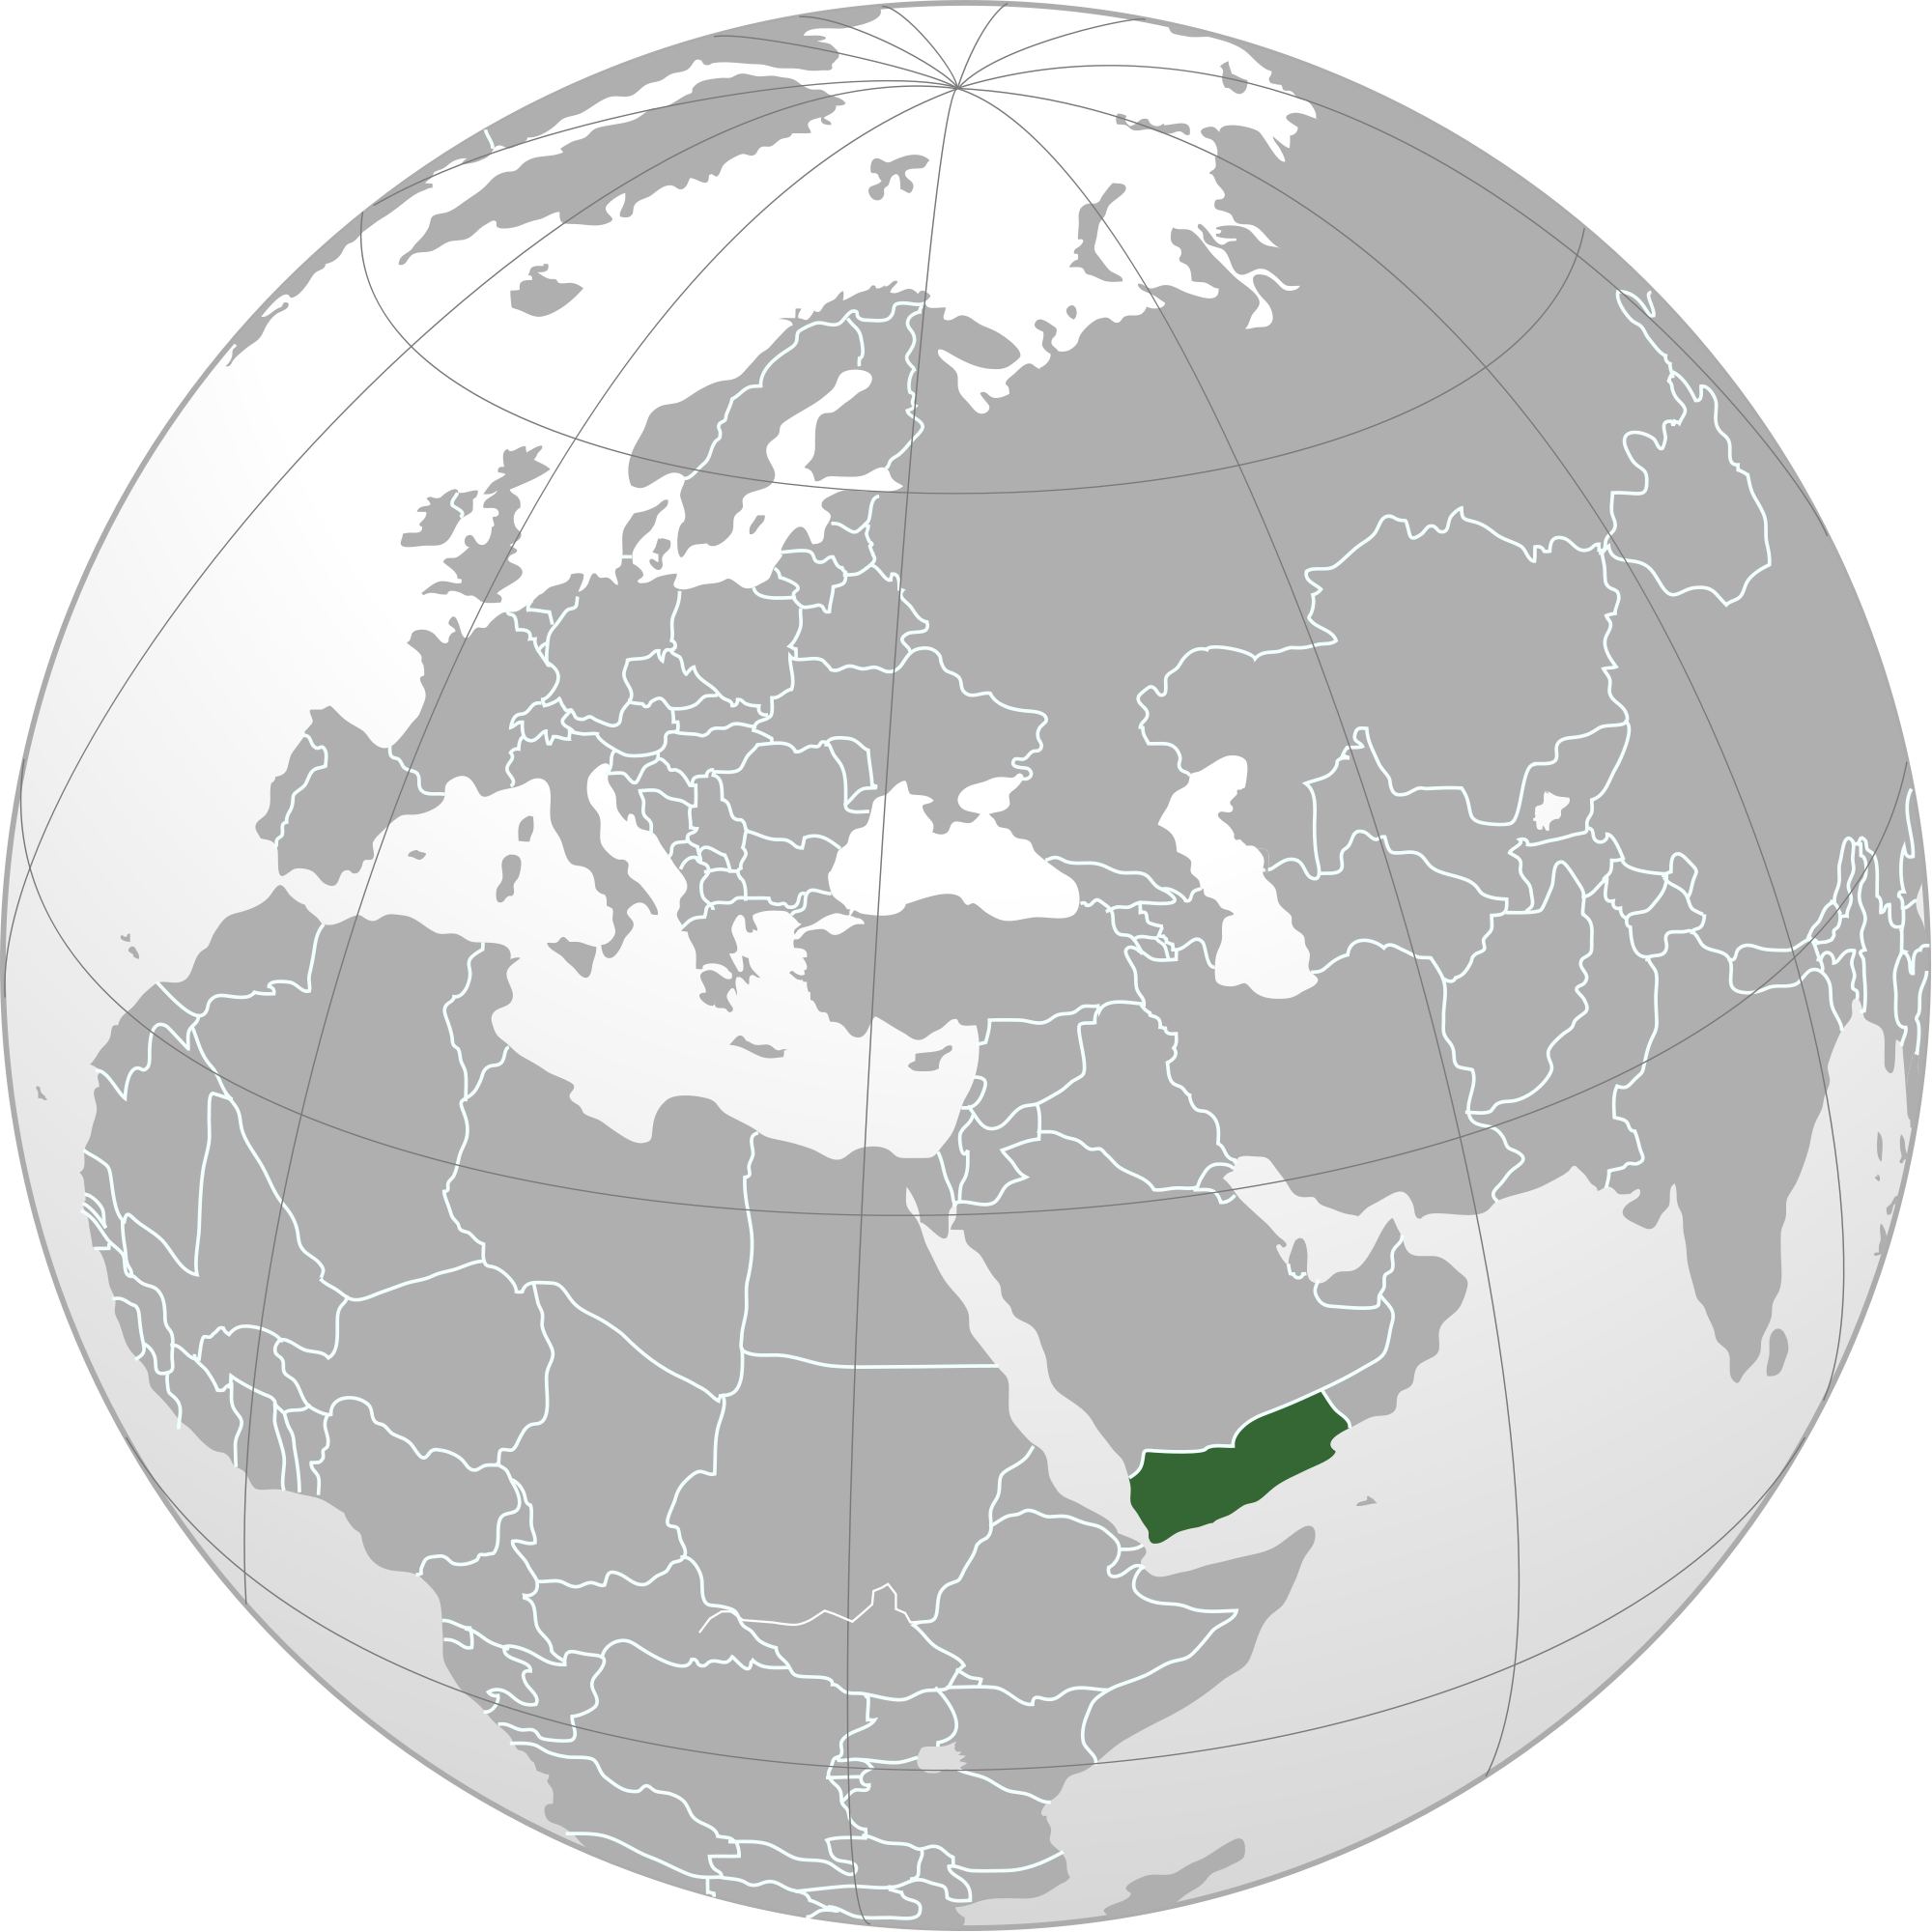 Location of the Yemen in the World Map